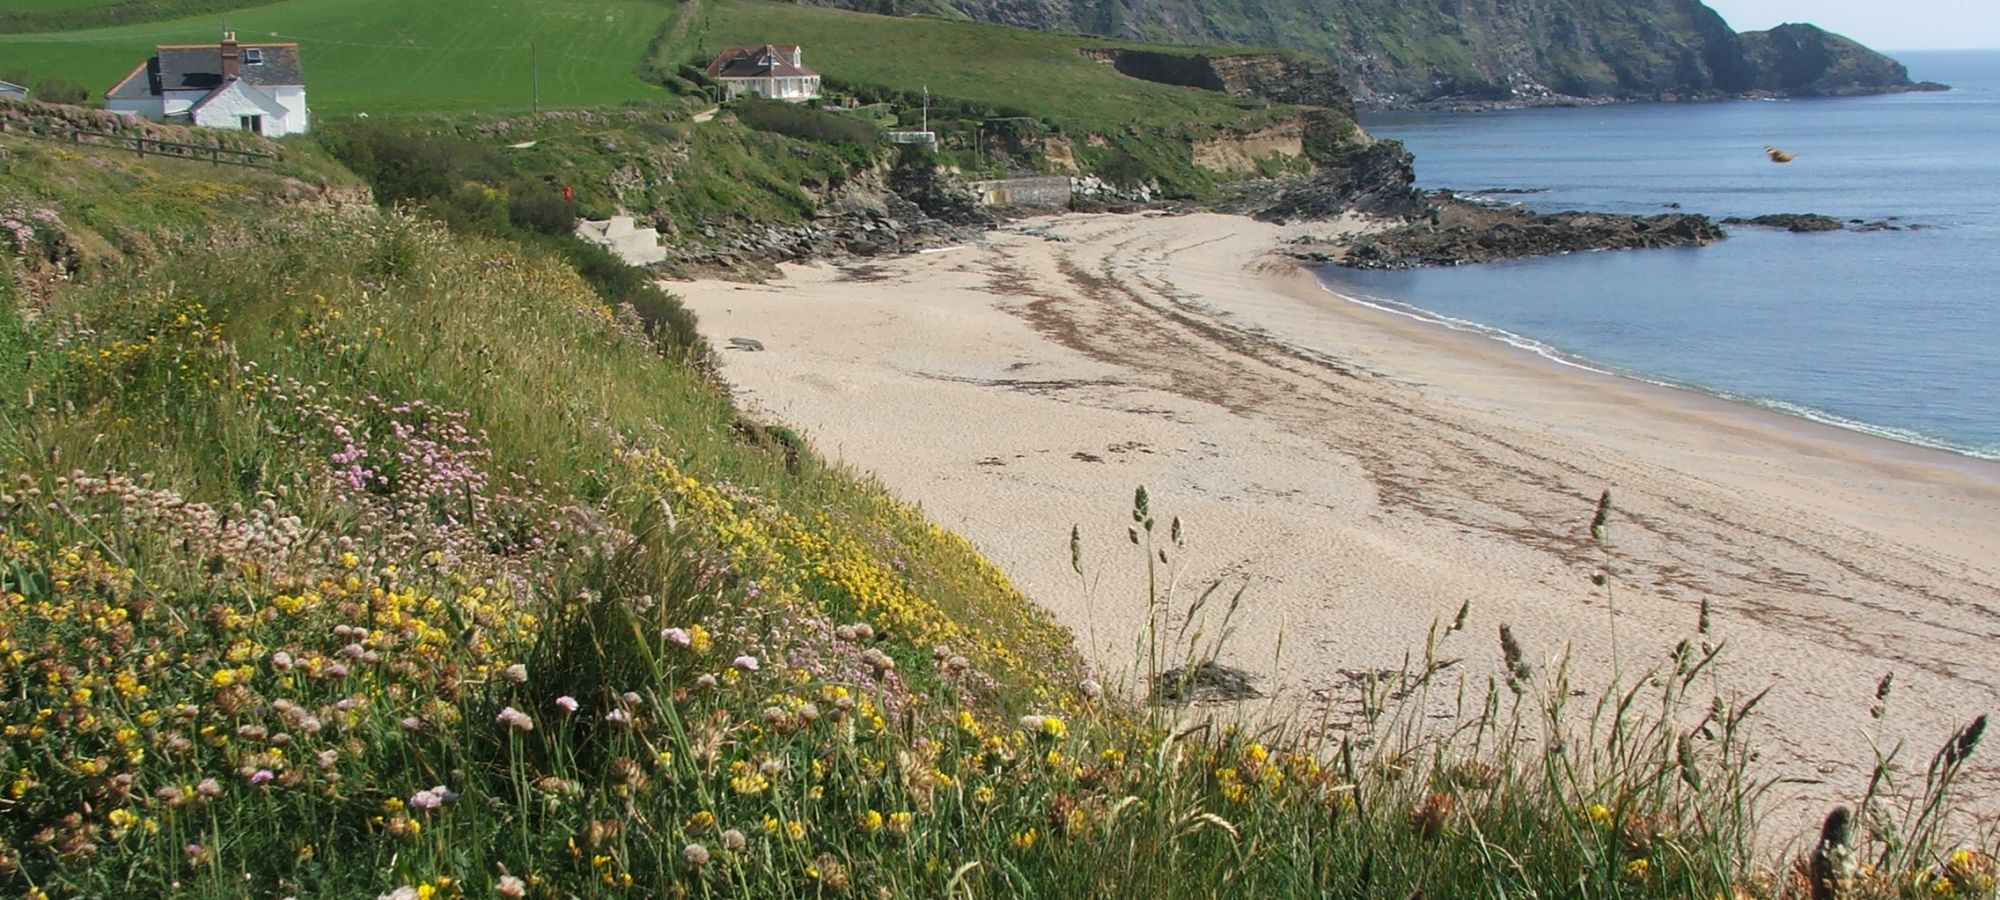 Gunwallow beach, Cornwall